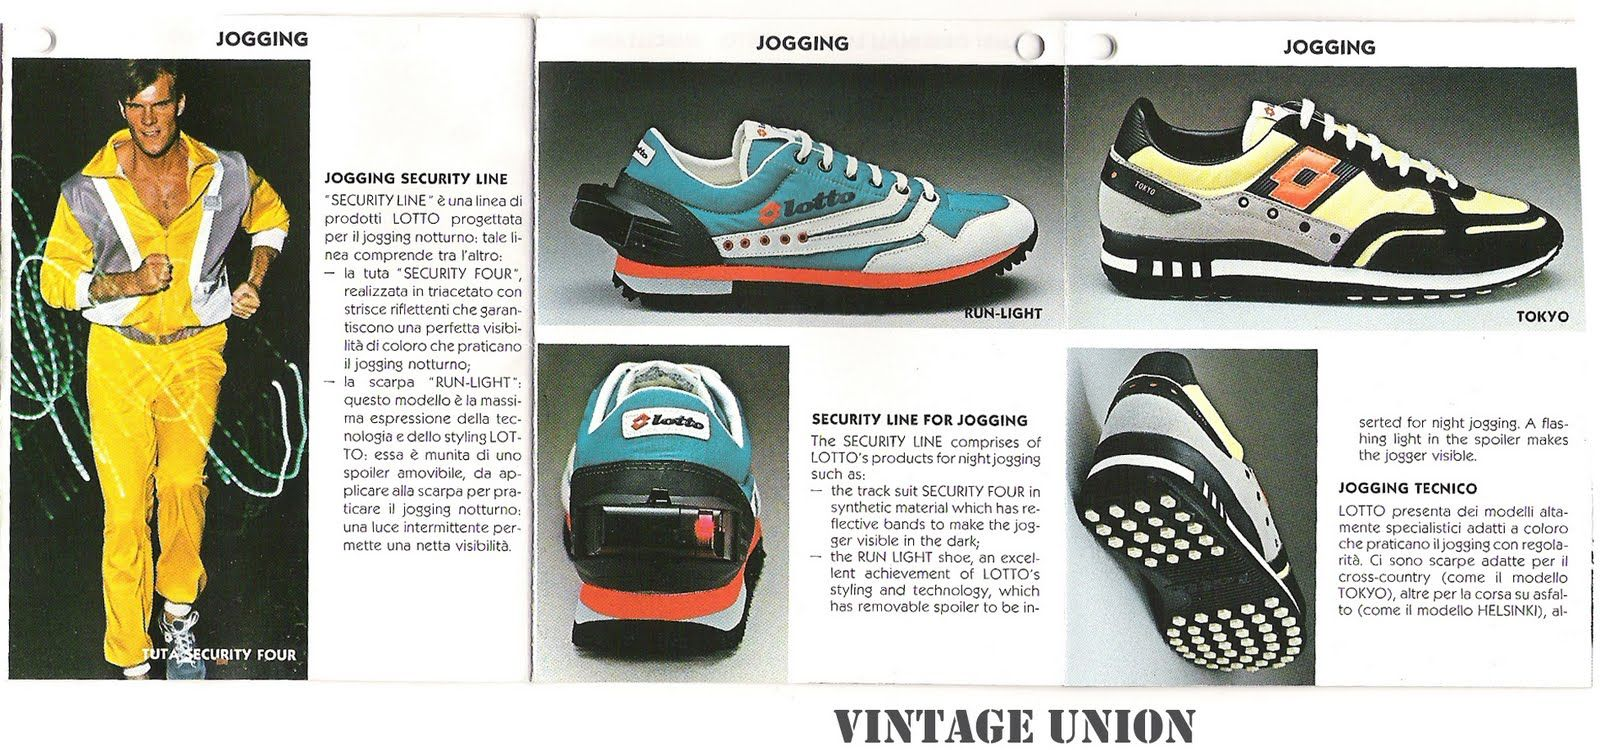 Footwear Sports And Ssipl Lotto Pinterest Vintage wxqOPHXn8H